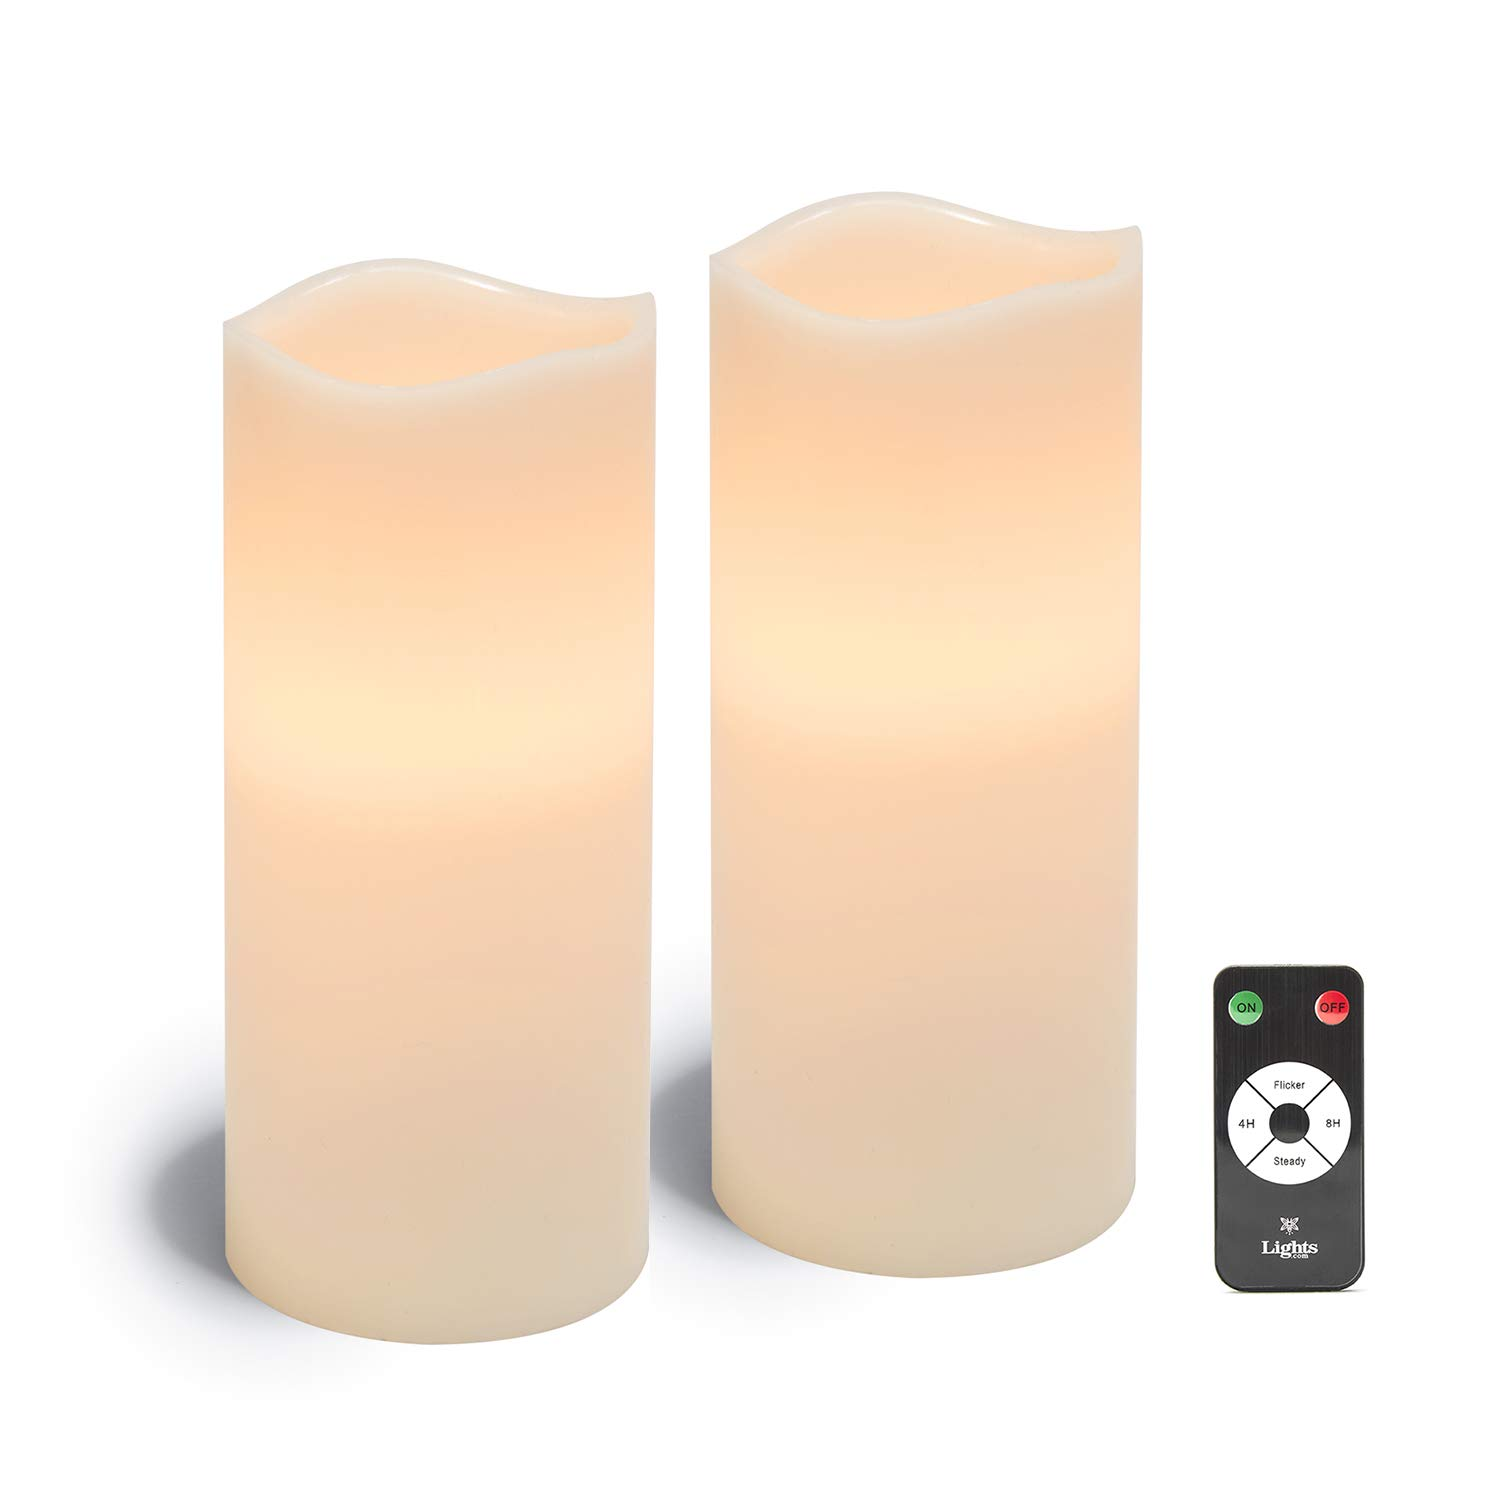 Large Flameless Pillar Candles - White Wax 4 x 10 Inch Candle Set, 2 Pack, Melted Edge, Warm White LED Light - Batteries & Remote Included by LampLust